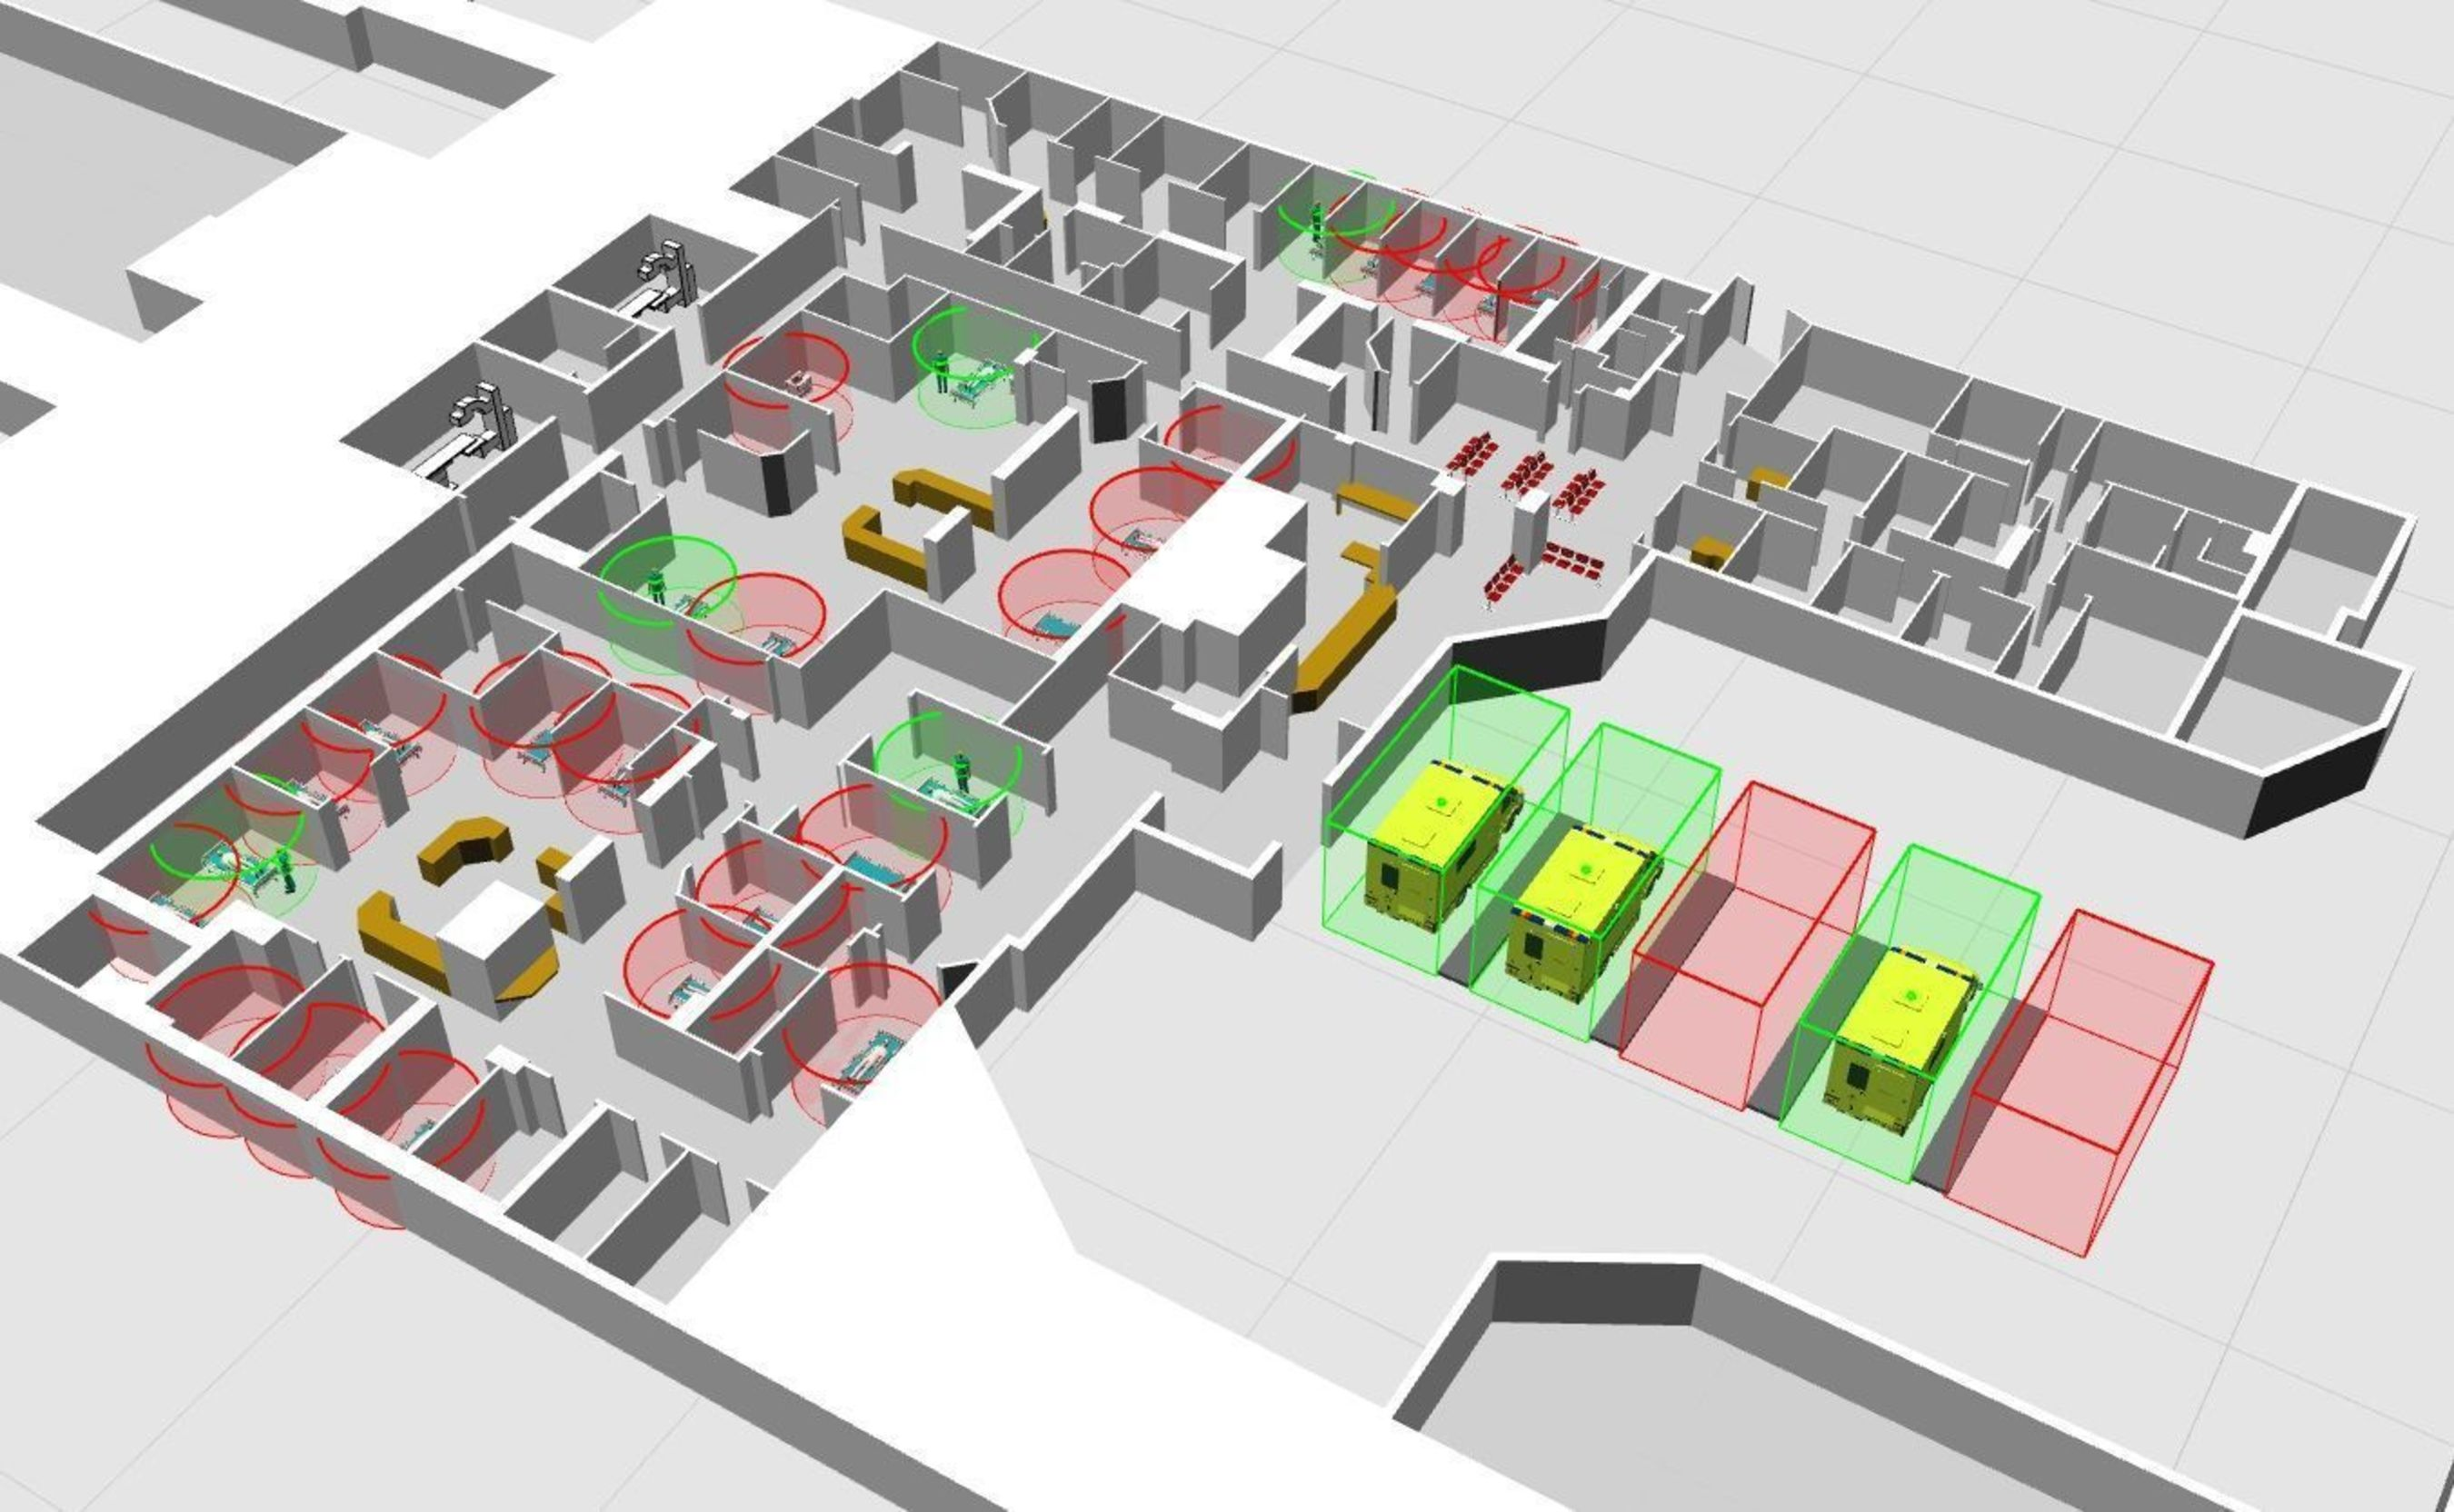 Ubisense Awarded Two Projects by SBRI Healthcare to Improve Processes in NHS Accident and Emergency Services (A&E)